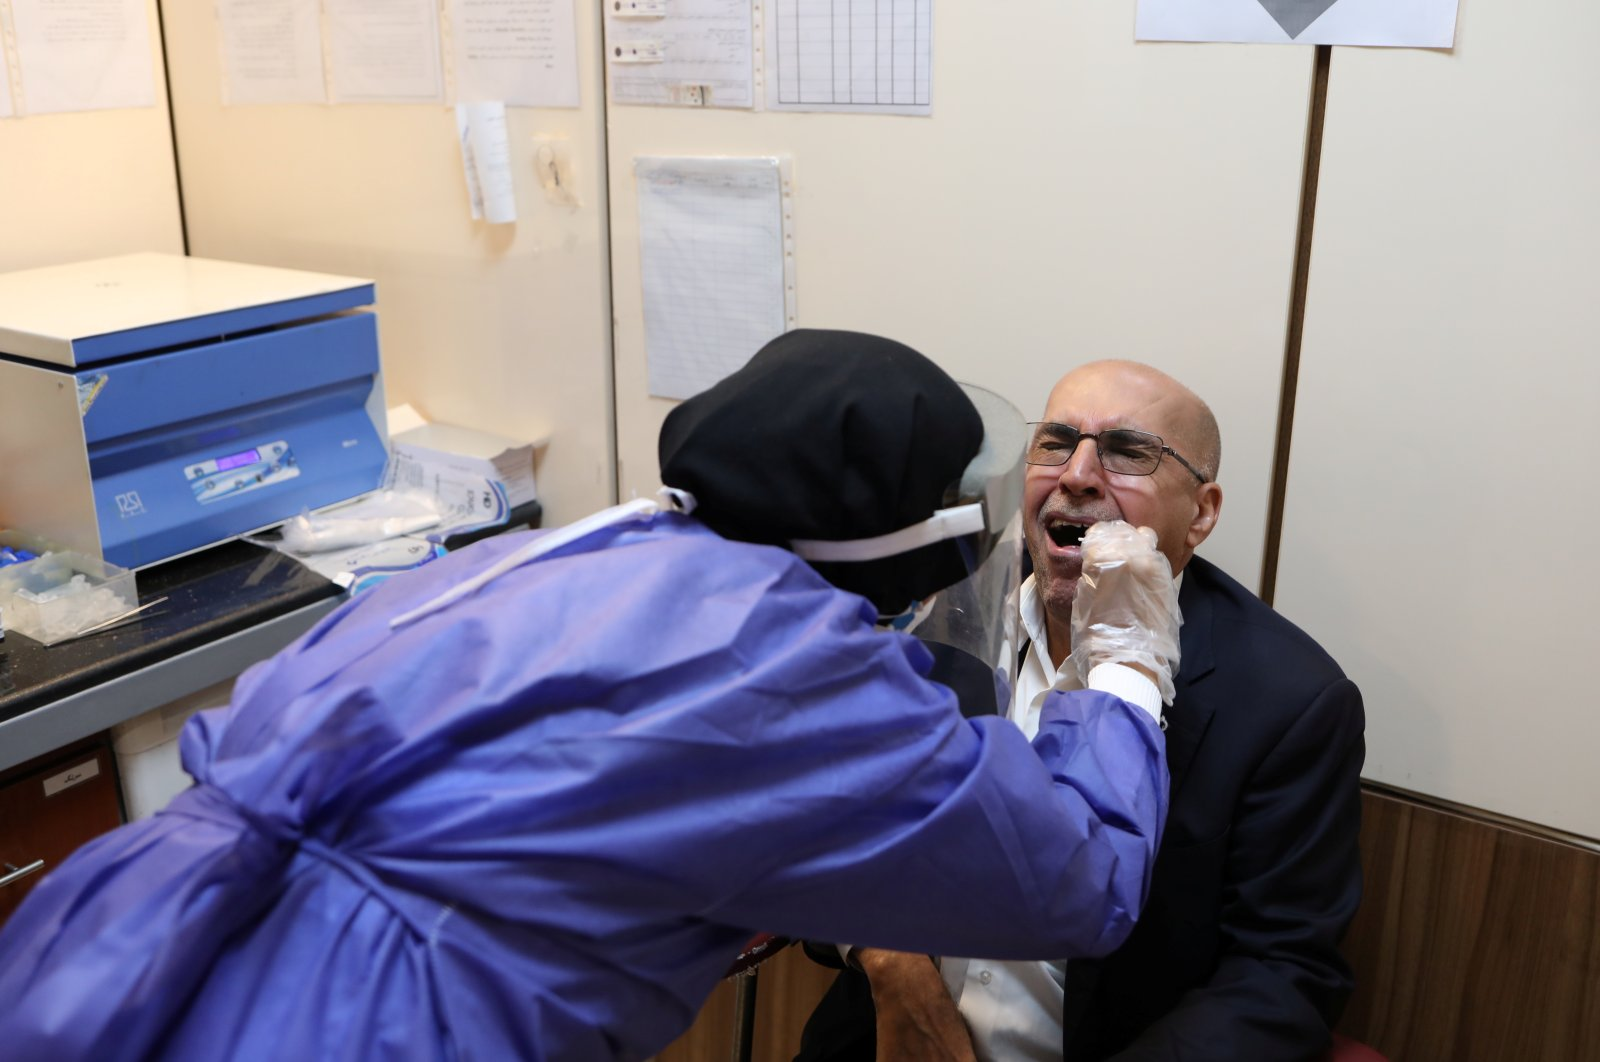 A member of the medical team wears a protective suit as she collects saliva of a man to be checked at a testing center for COVID-19, in Tehran, Iran, May 20, 2020. (WANA via Reuters)